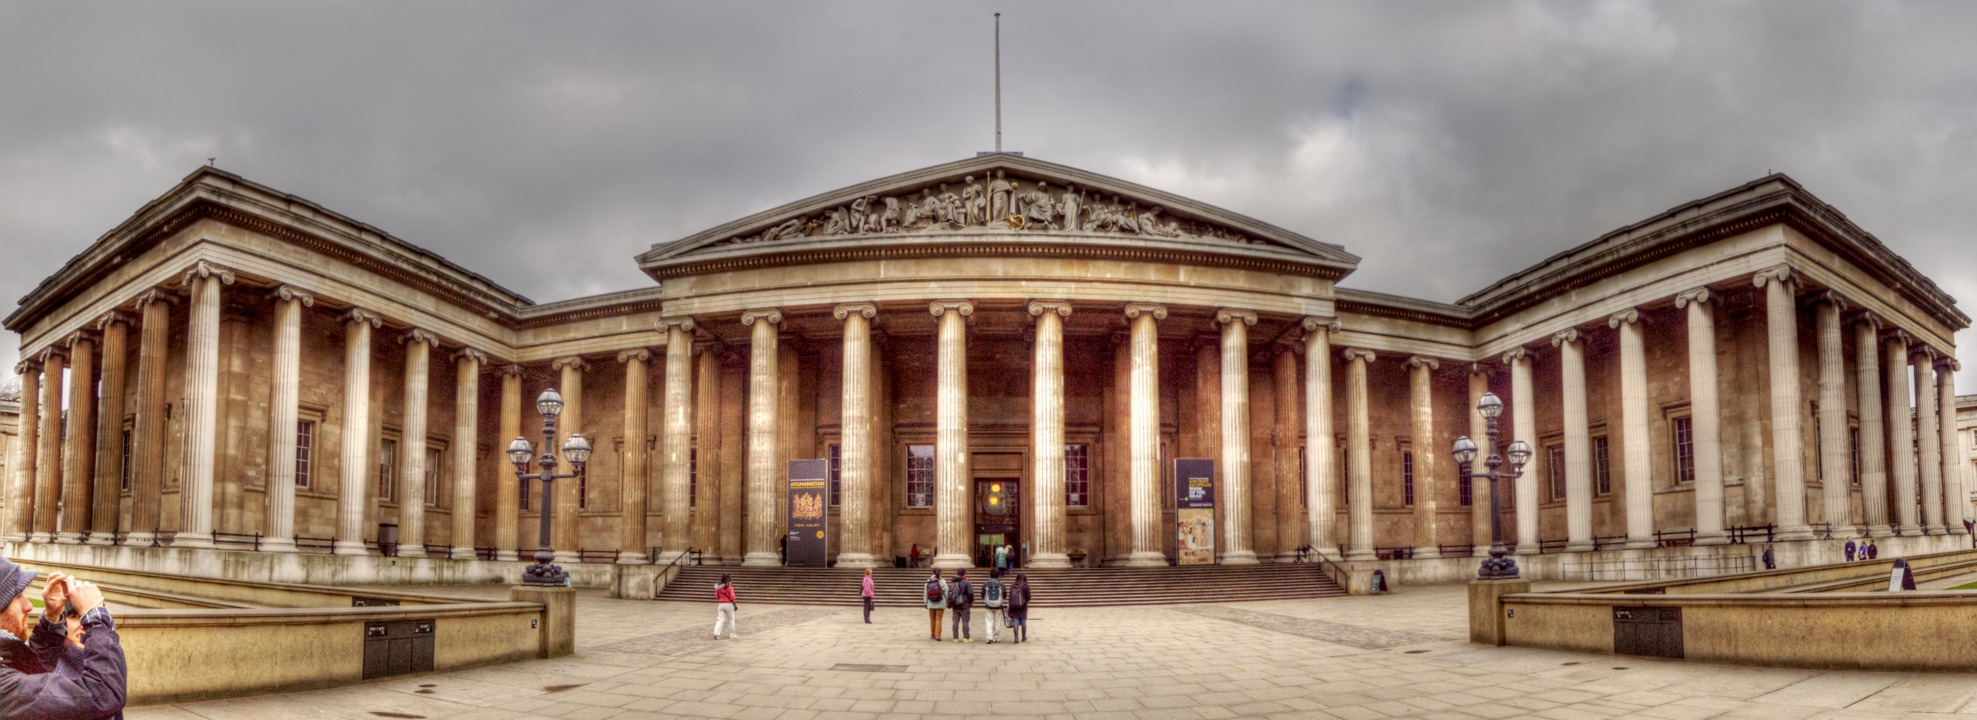 British Museum by kdif...